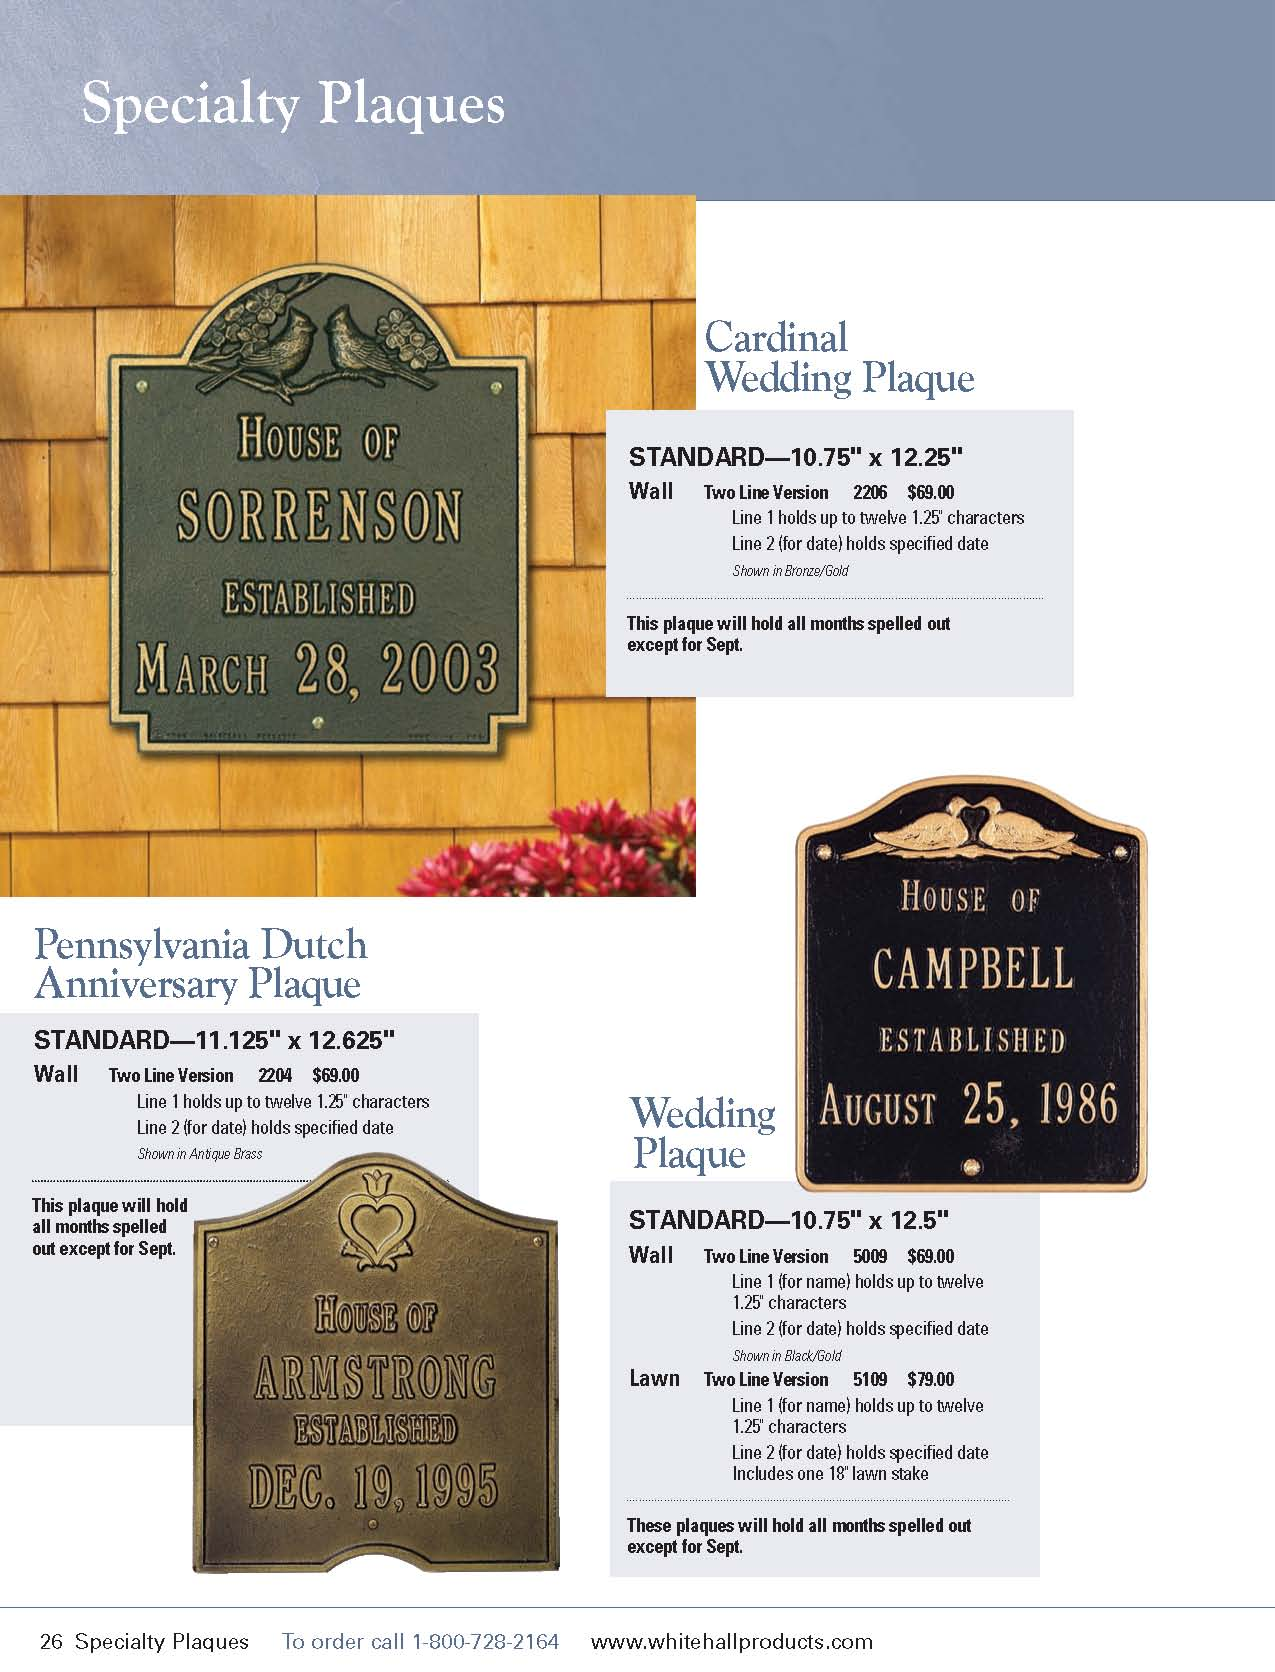 whitehall_catalog_pers_Page_26.jpg